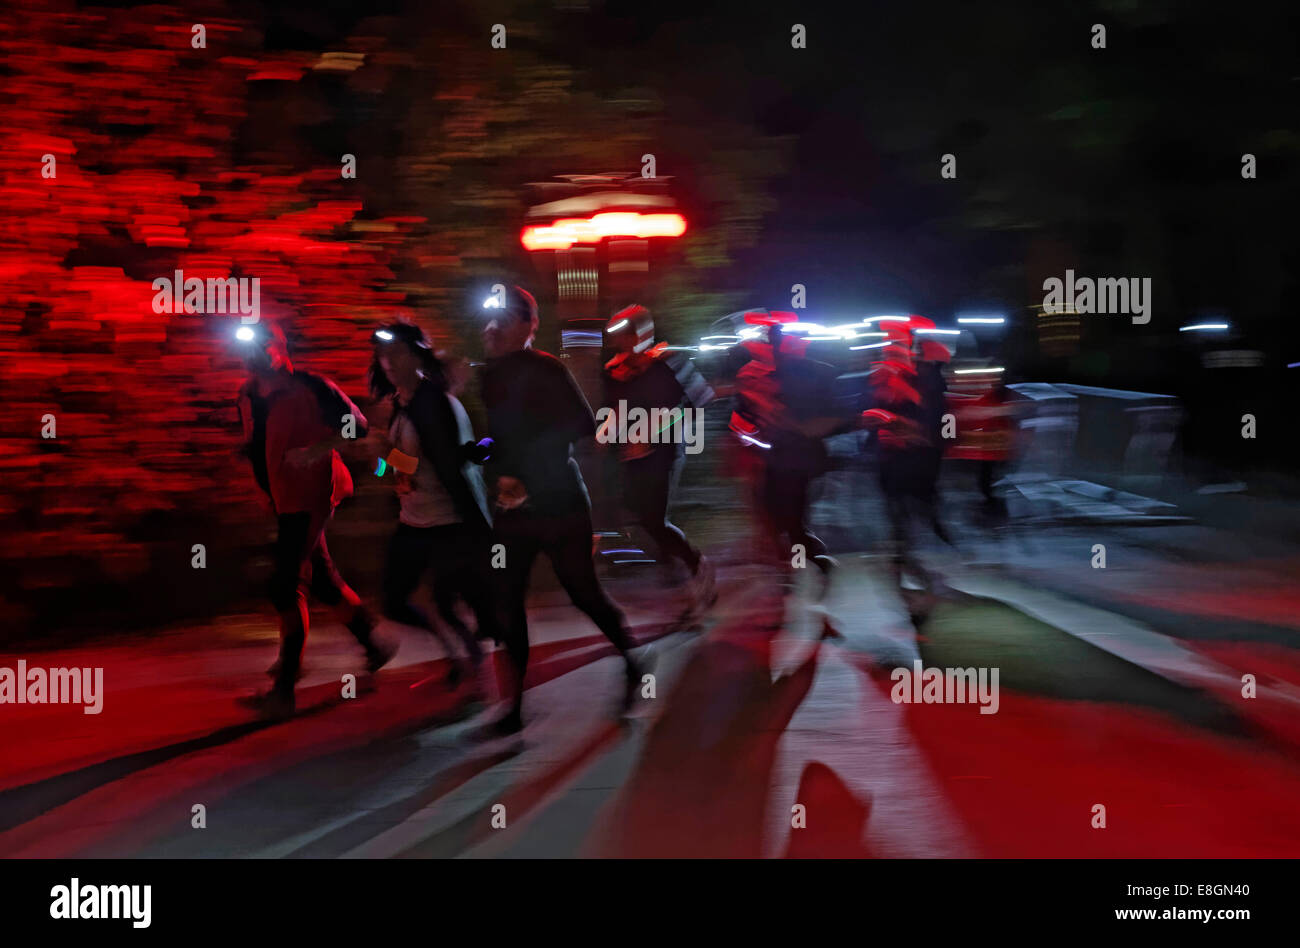 Runners wearing headlamps during a night run, Landschaftspark Duisburg-Nord, landscape park at a disused industrial - Stock Image